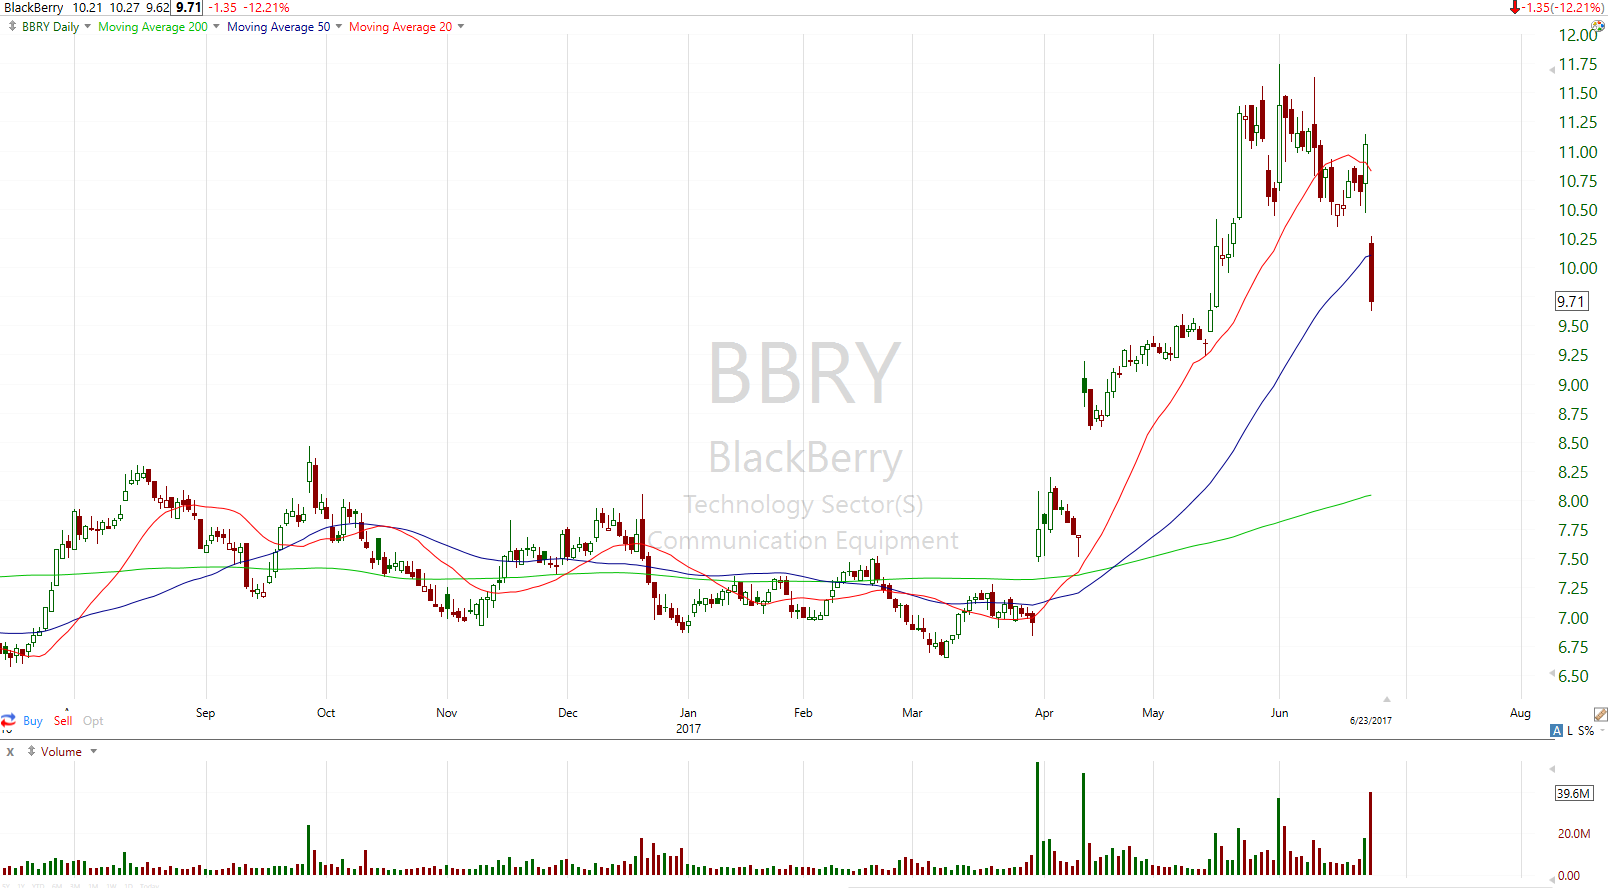 BlackBerry Limited (BBRY) Posts Quarterly Earnings Results, Hits Expectations